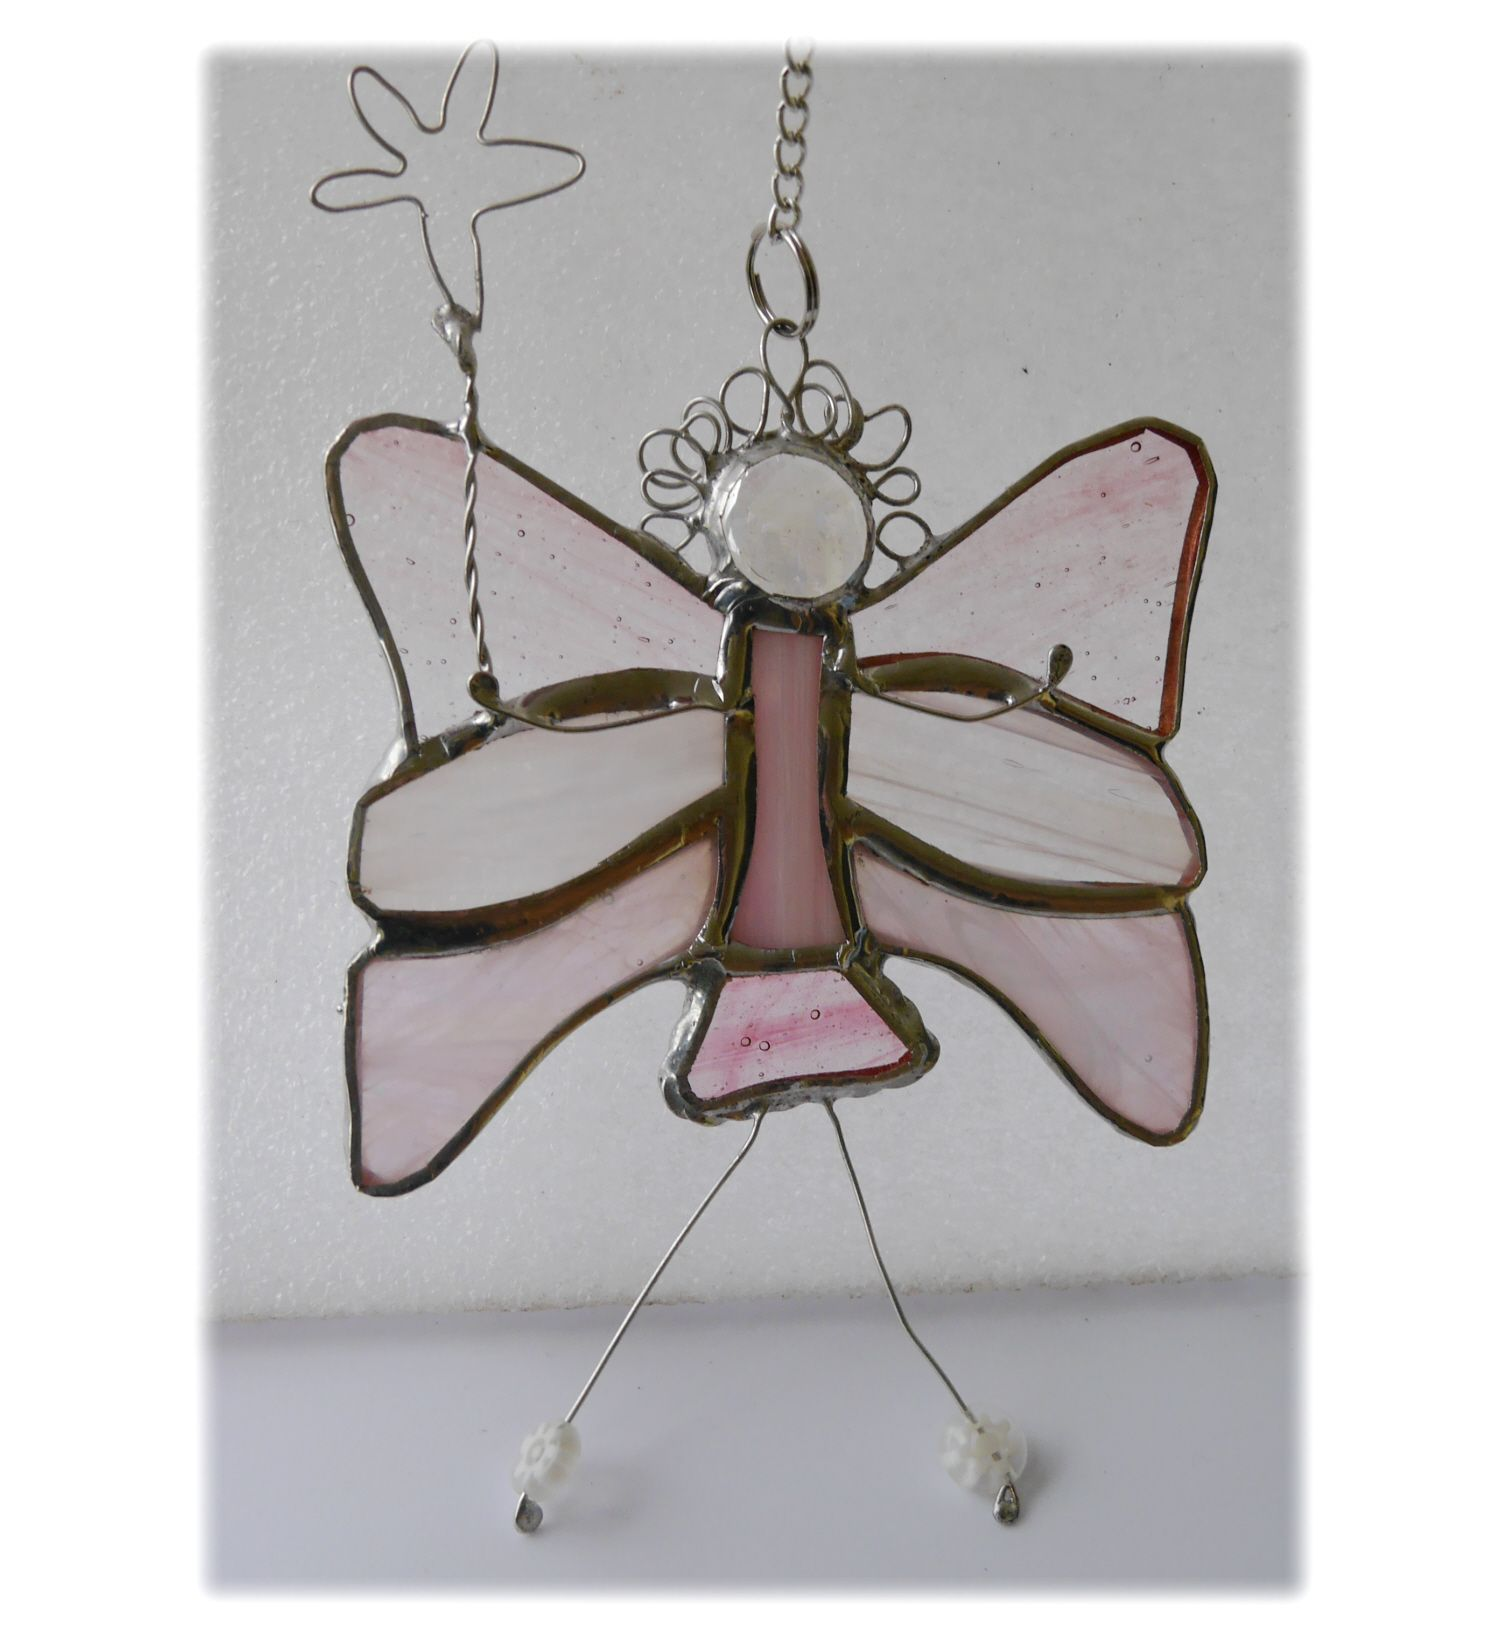 Fairyfly 021 Pale pink #1908 FREE 14.50